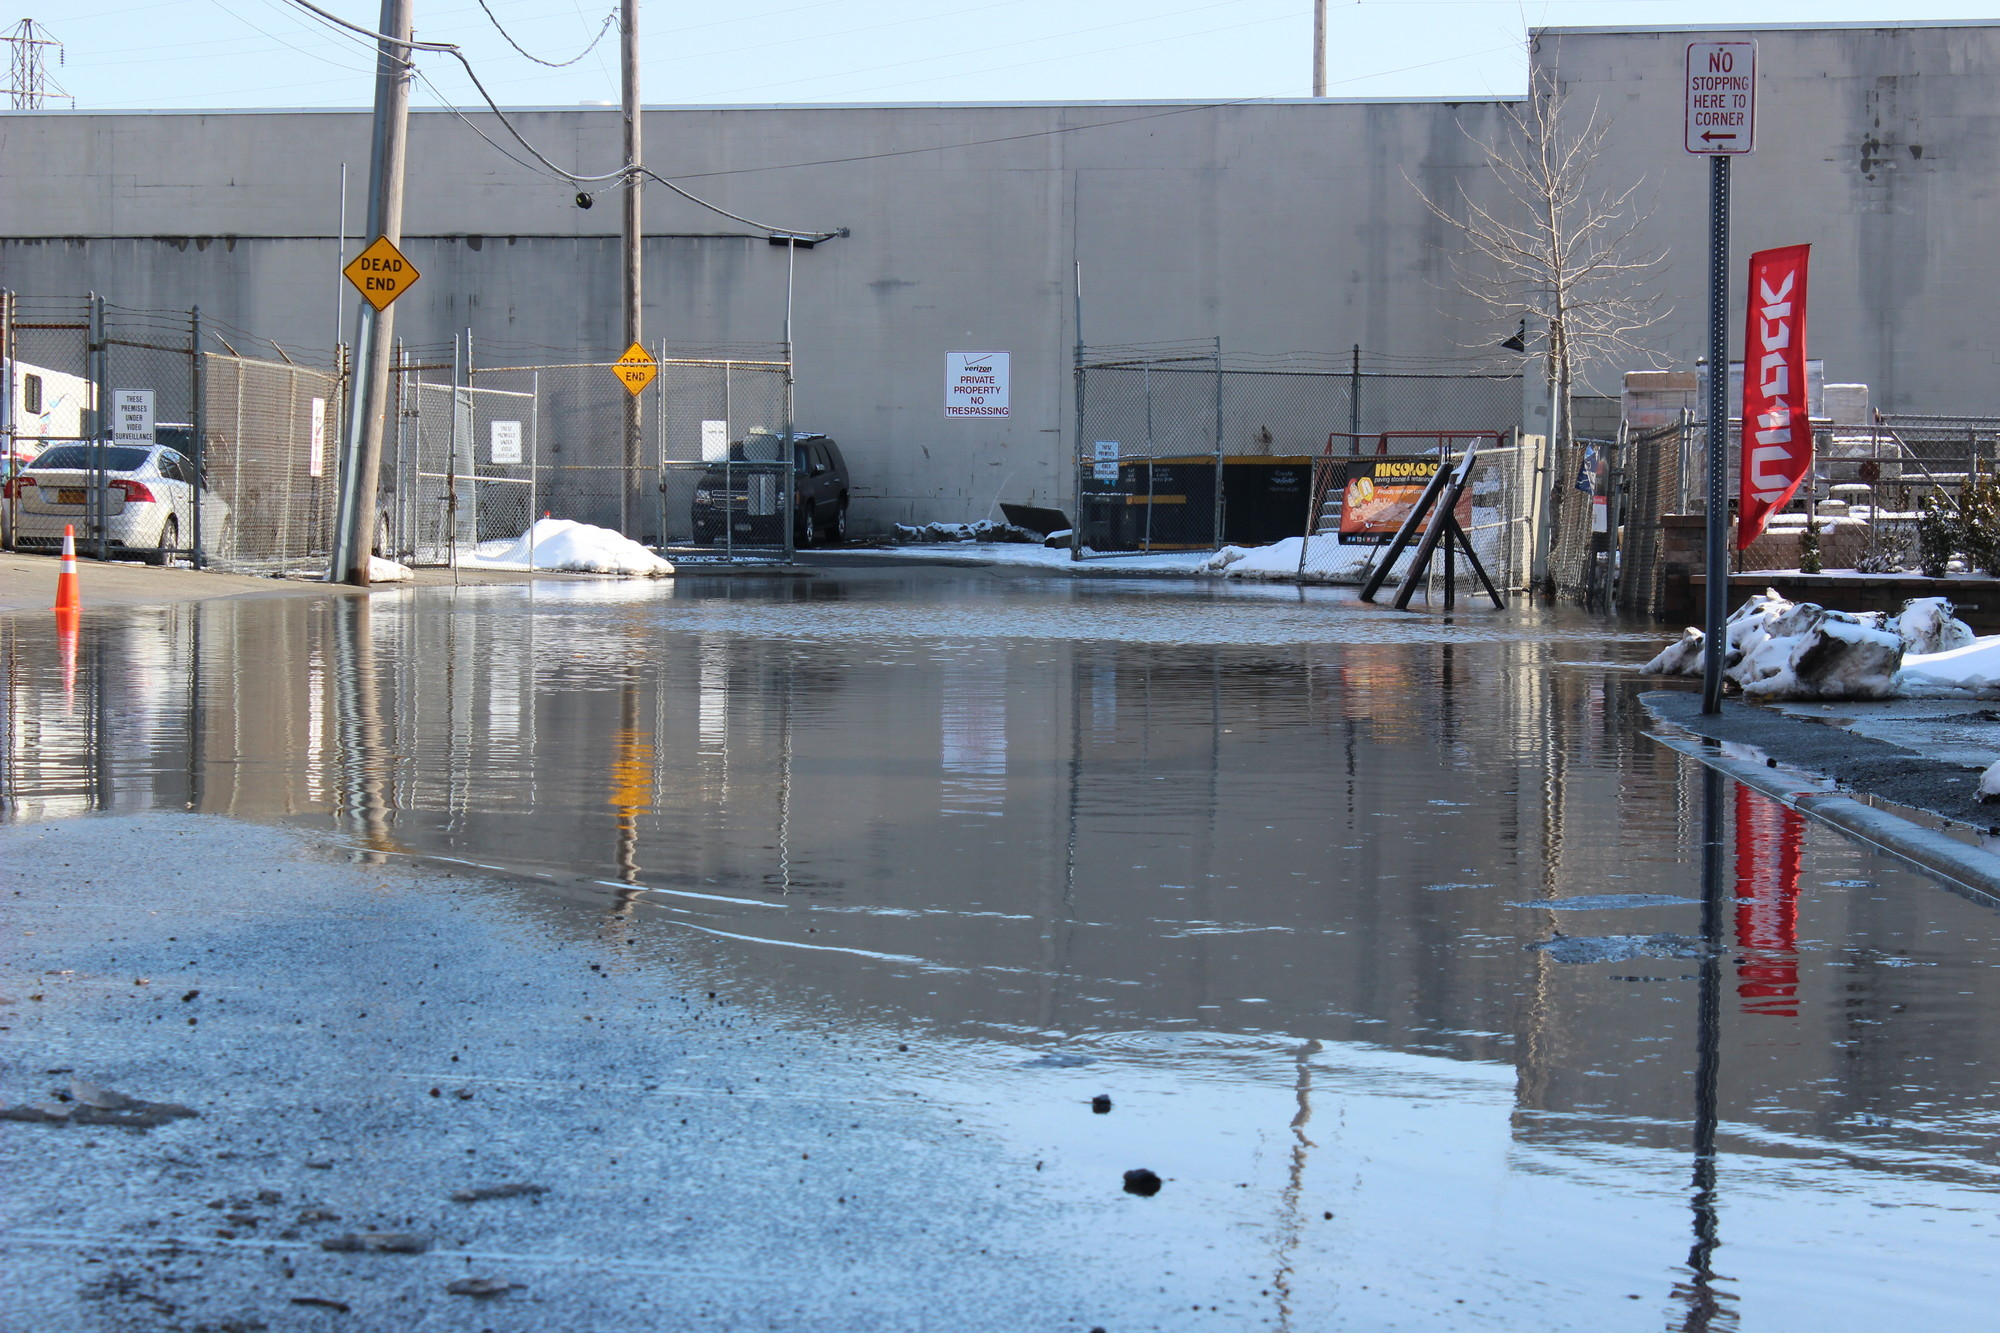 The flooding in Inwood, at the intersection of West Broadway and Taft Avenue, on Feb. 9 made the streets difficult for vehicles to negotiate.